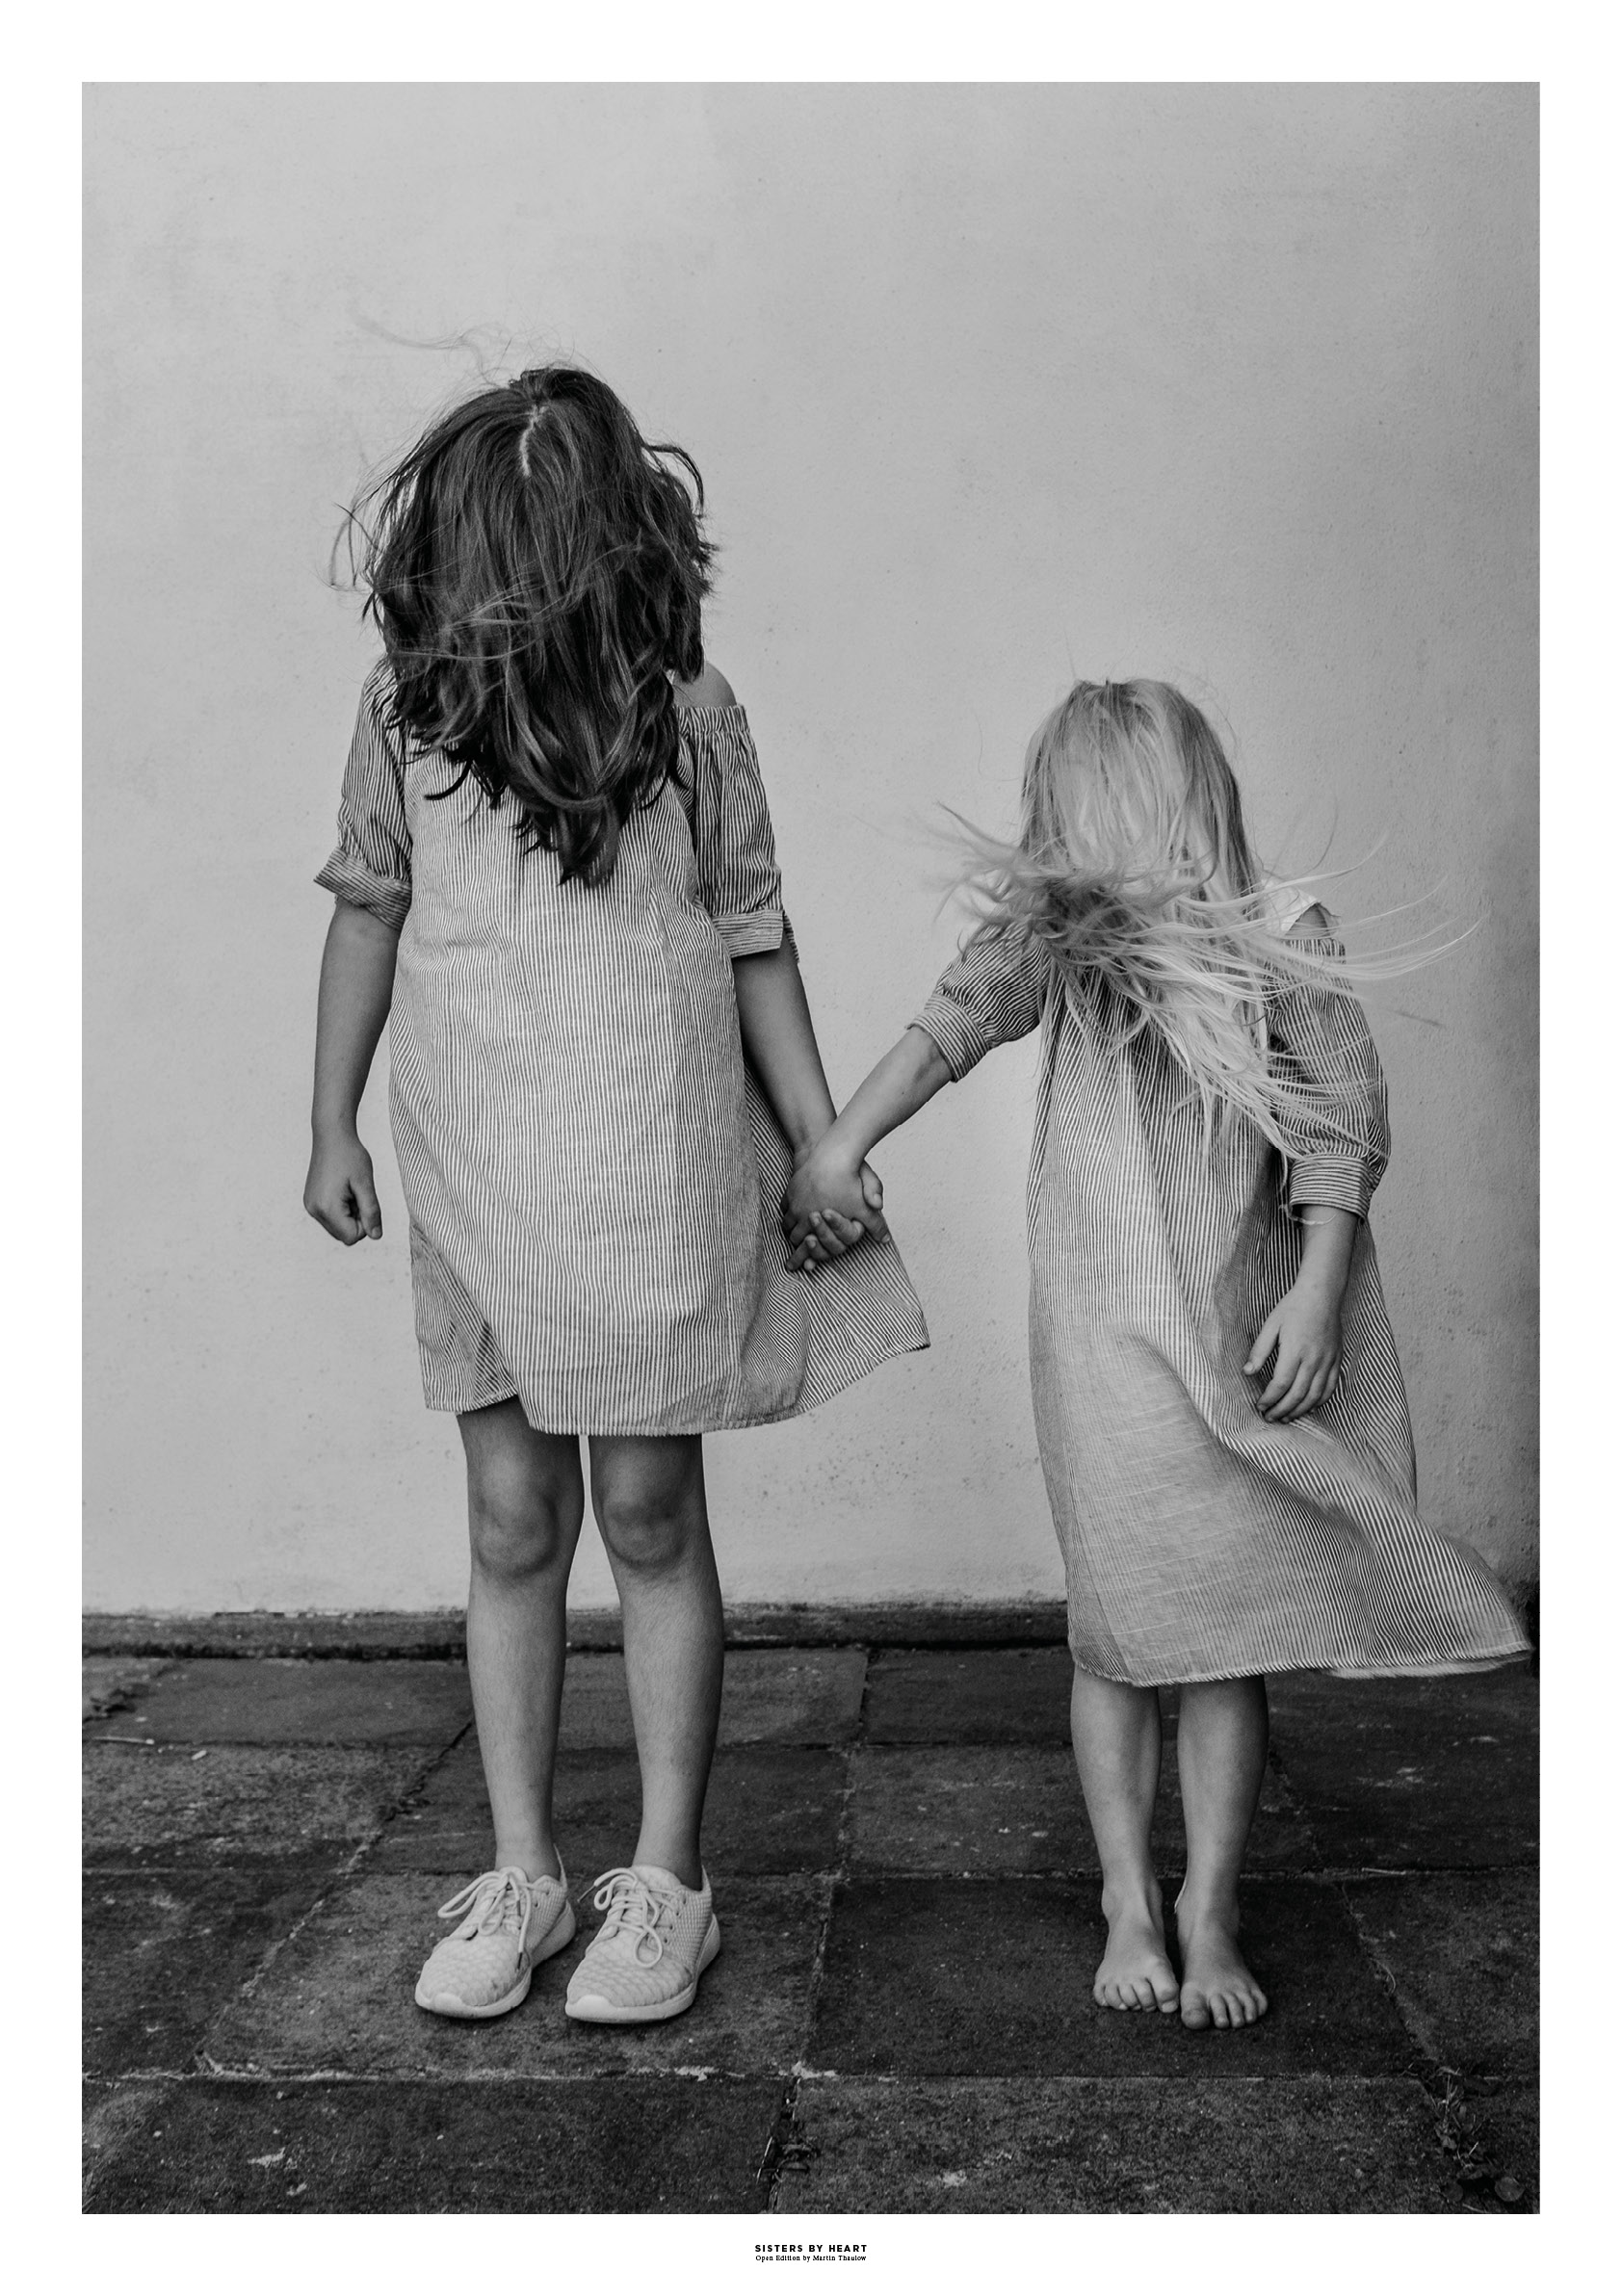 Sisters By Heart. Photo by photographer Martin Thaulow. Open Edition (seen with the white frame around the image as it is sold). Buy high quality print.